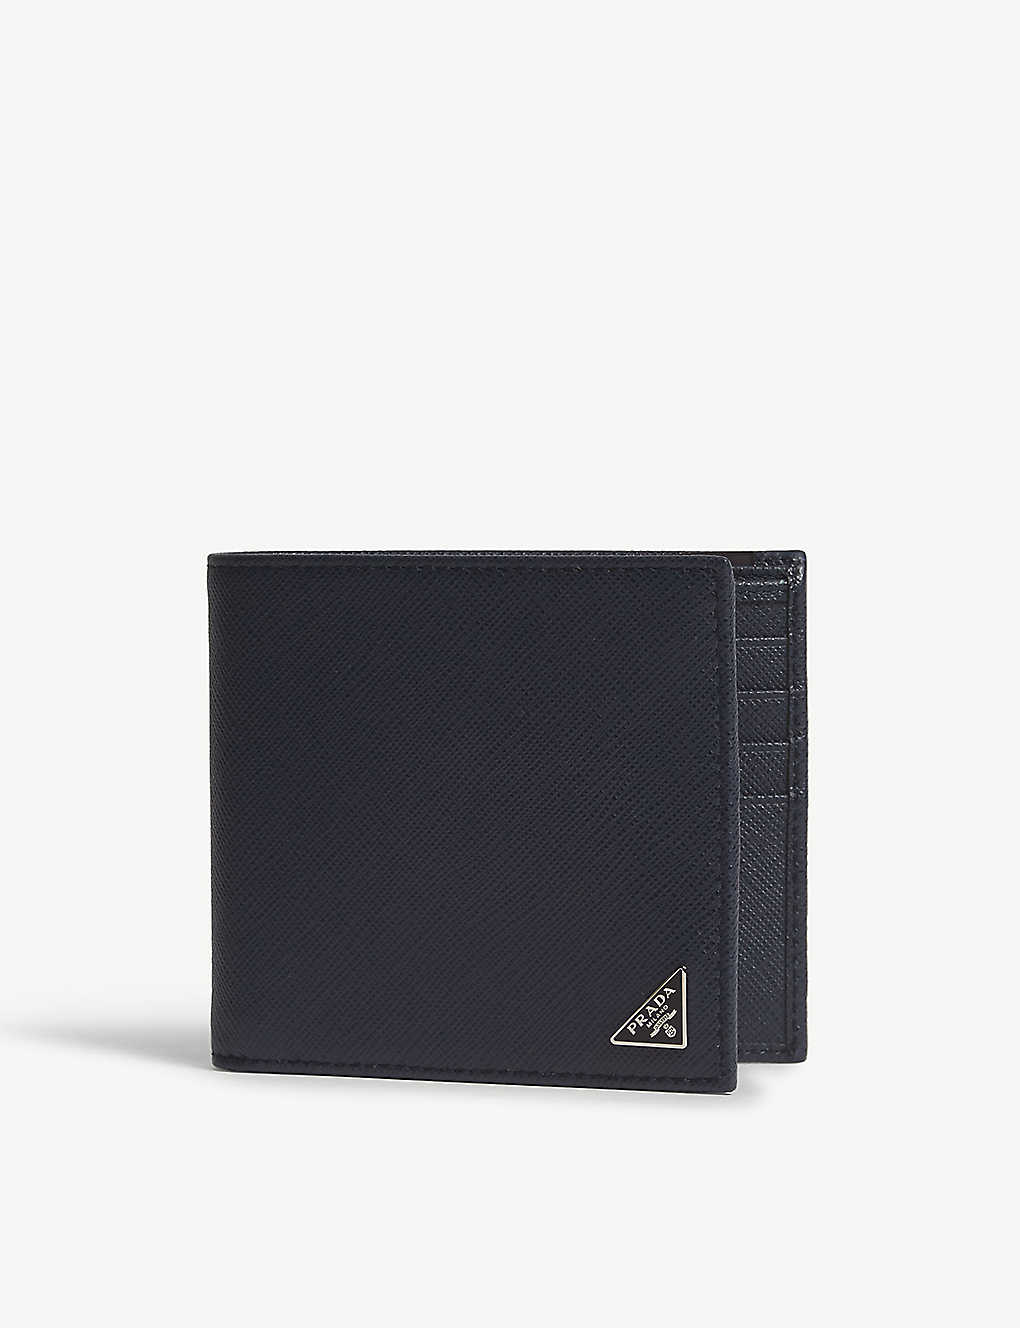 65d8d74c4b16 PRADA - Saffiano leather billfold wallet | Selfridges.com